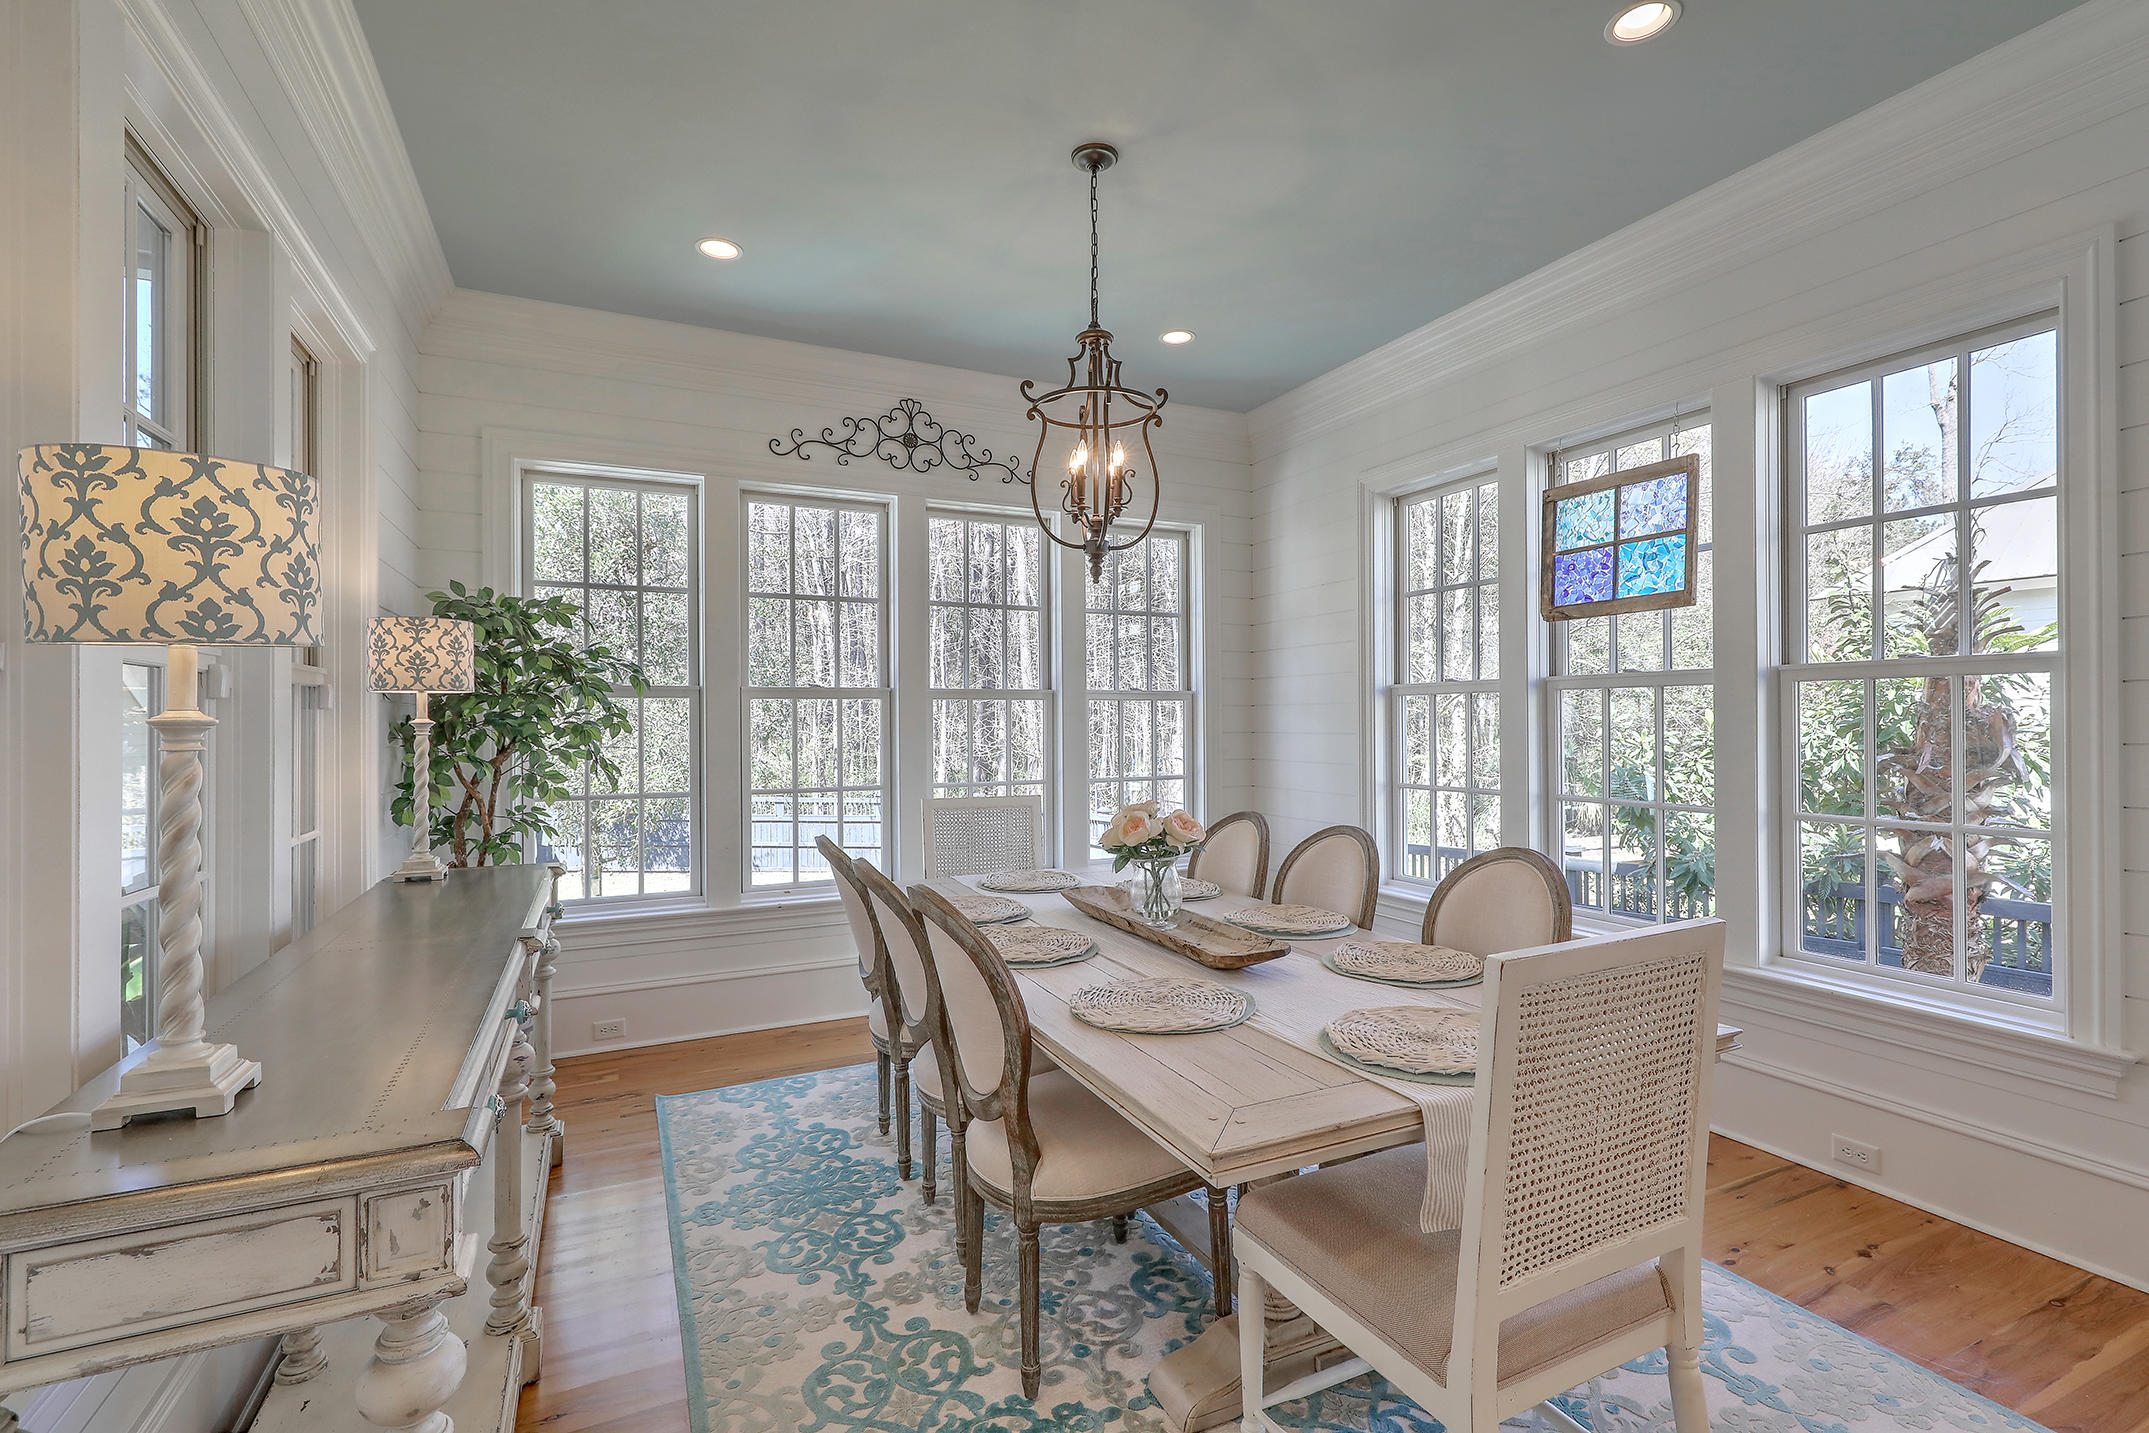 Belle Hall Homes For Sale - 716 Stucco, Mount Pleasant, SC - 0